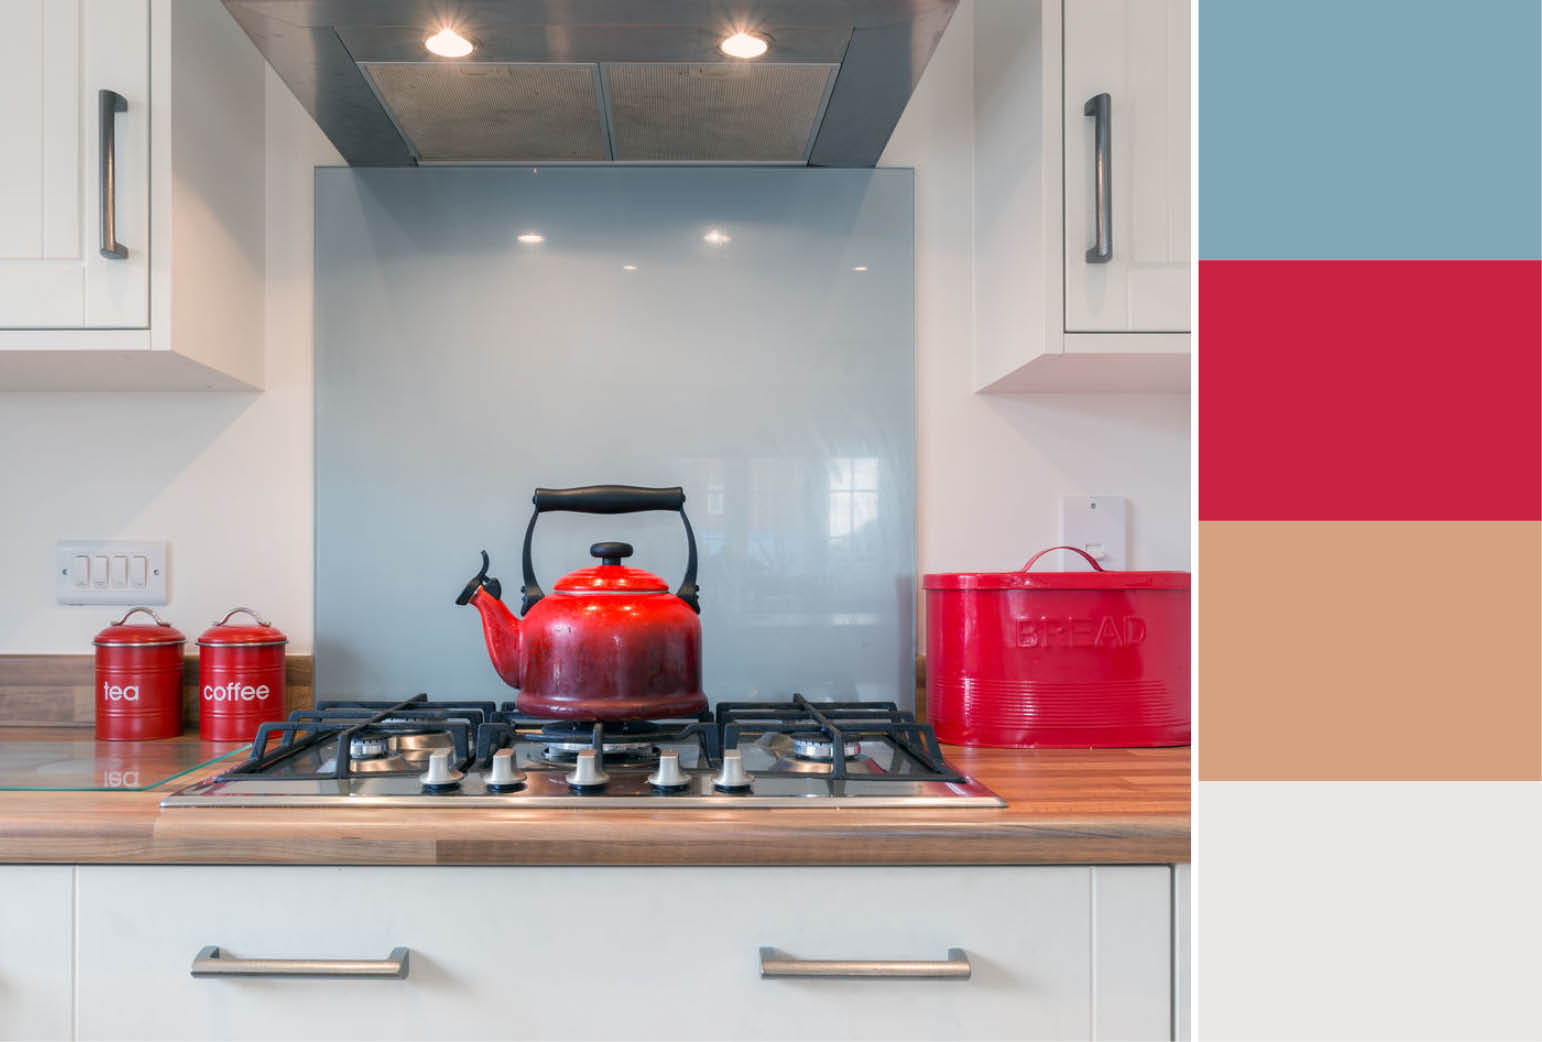 4THJaccent-walls-blue-red-kitchen